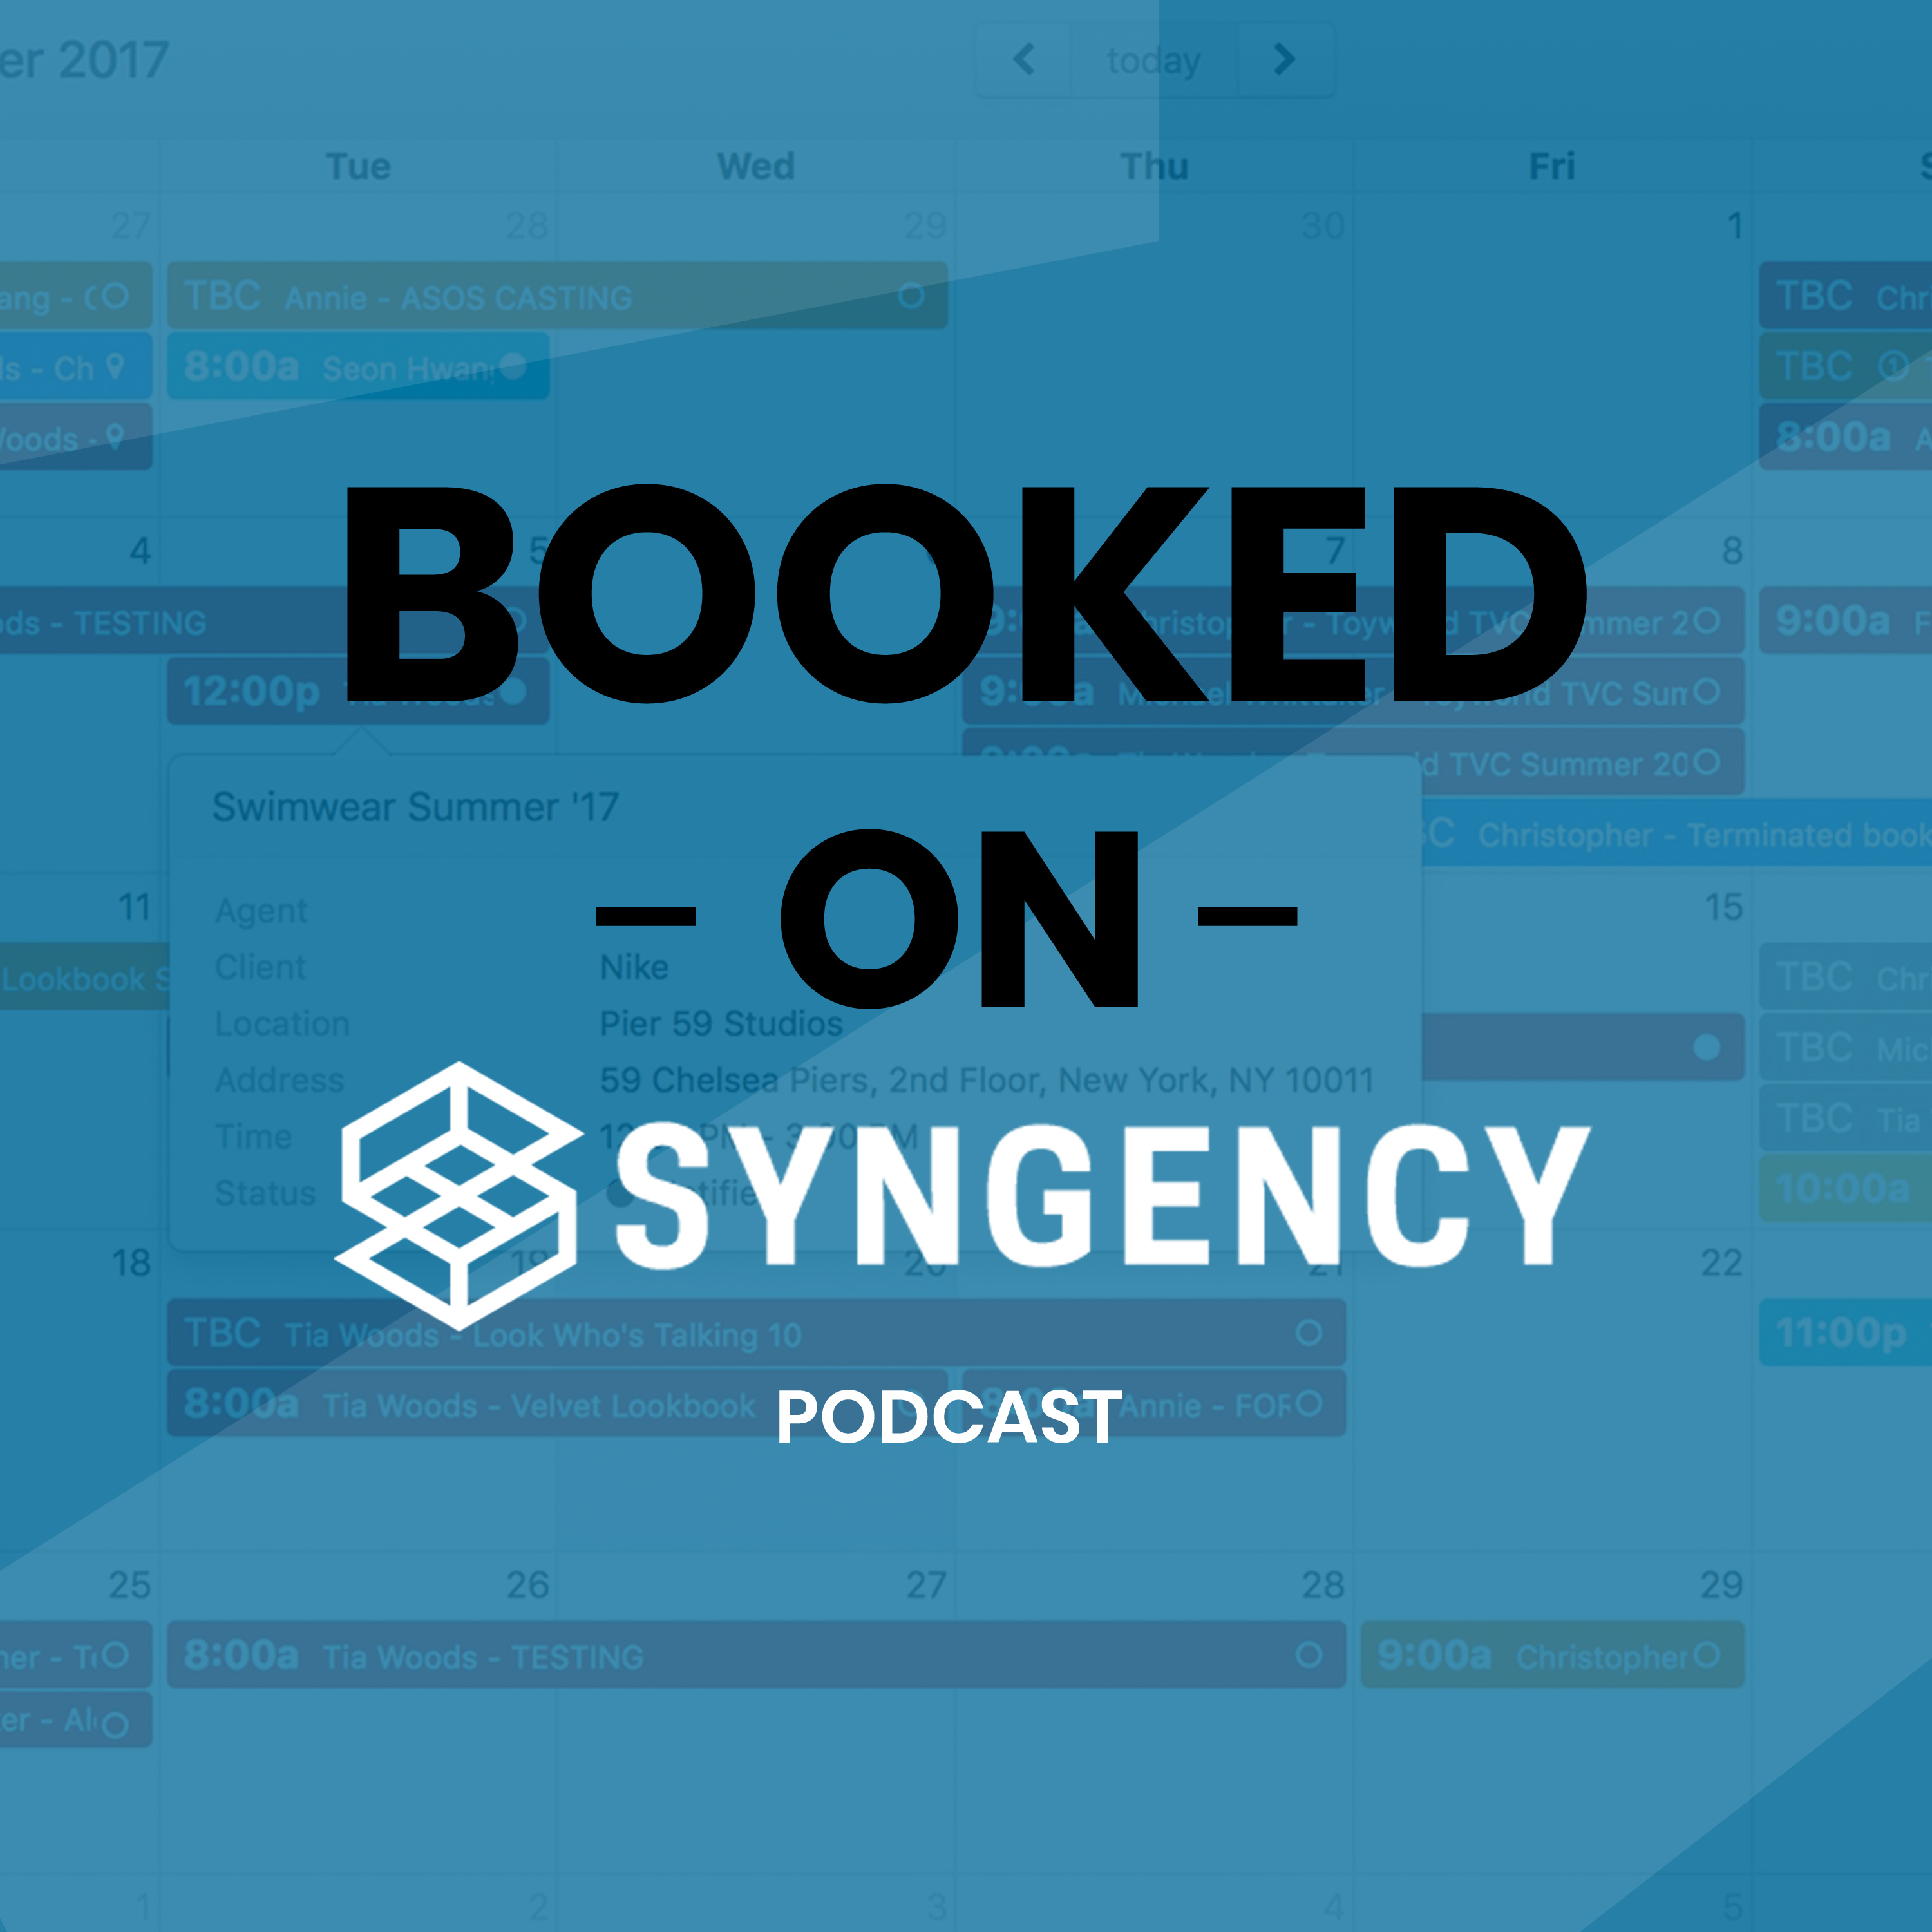 Introducing the BOOKED ON SYNGENCY Podcast!